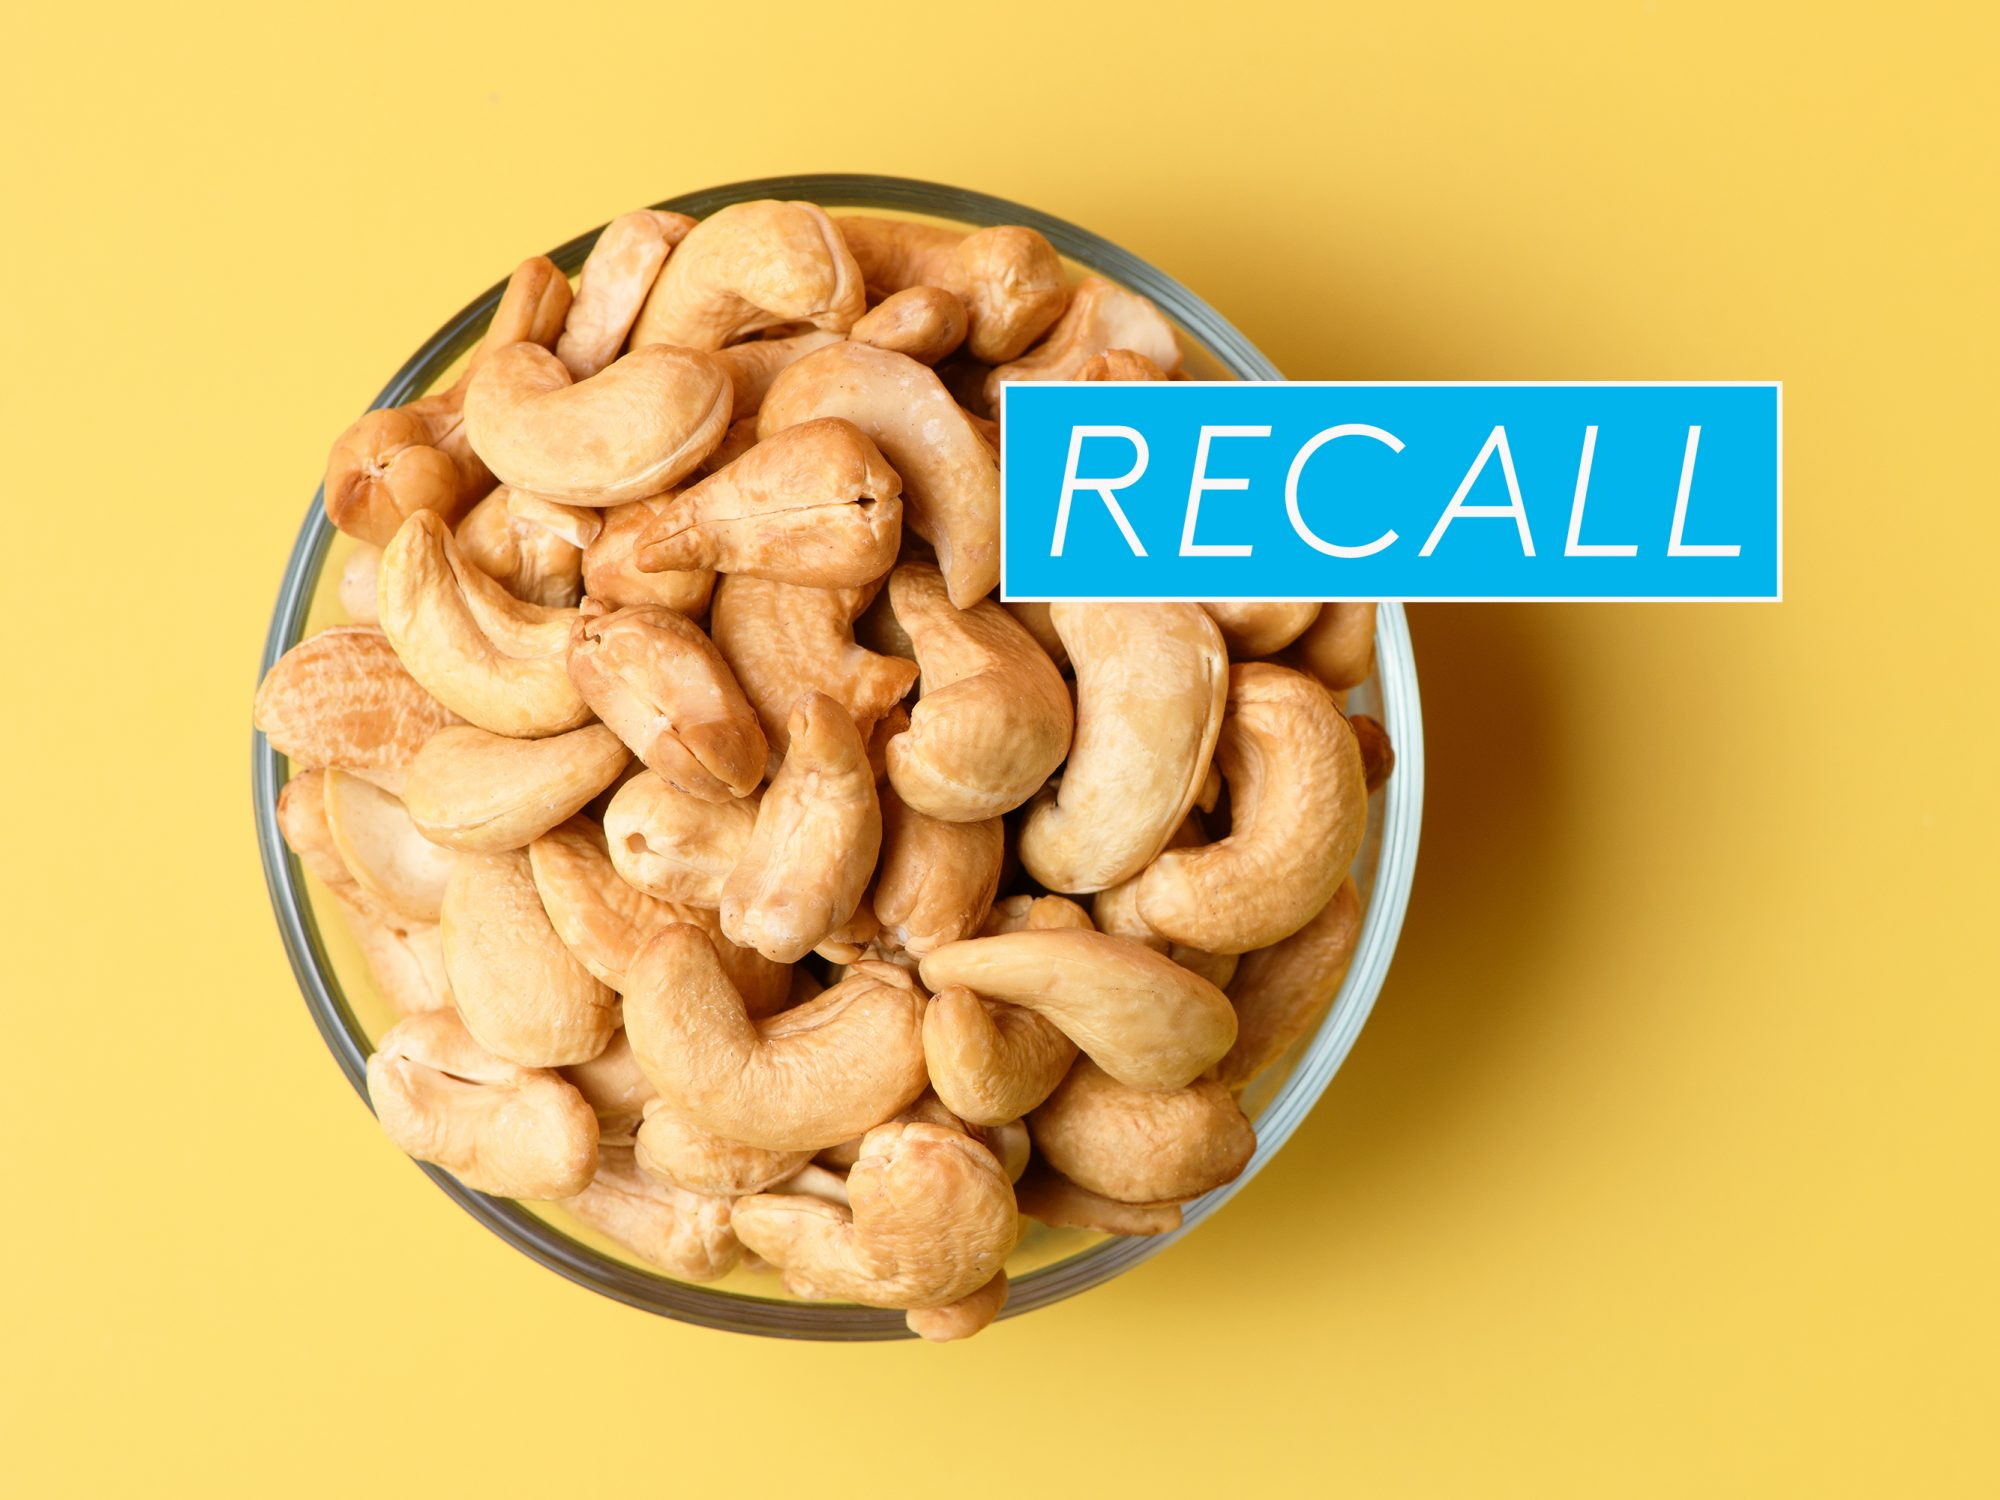 Flat lay of cashew in glass bowl with a recall sign on it